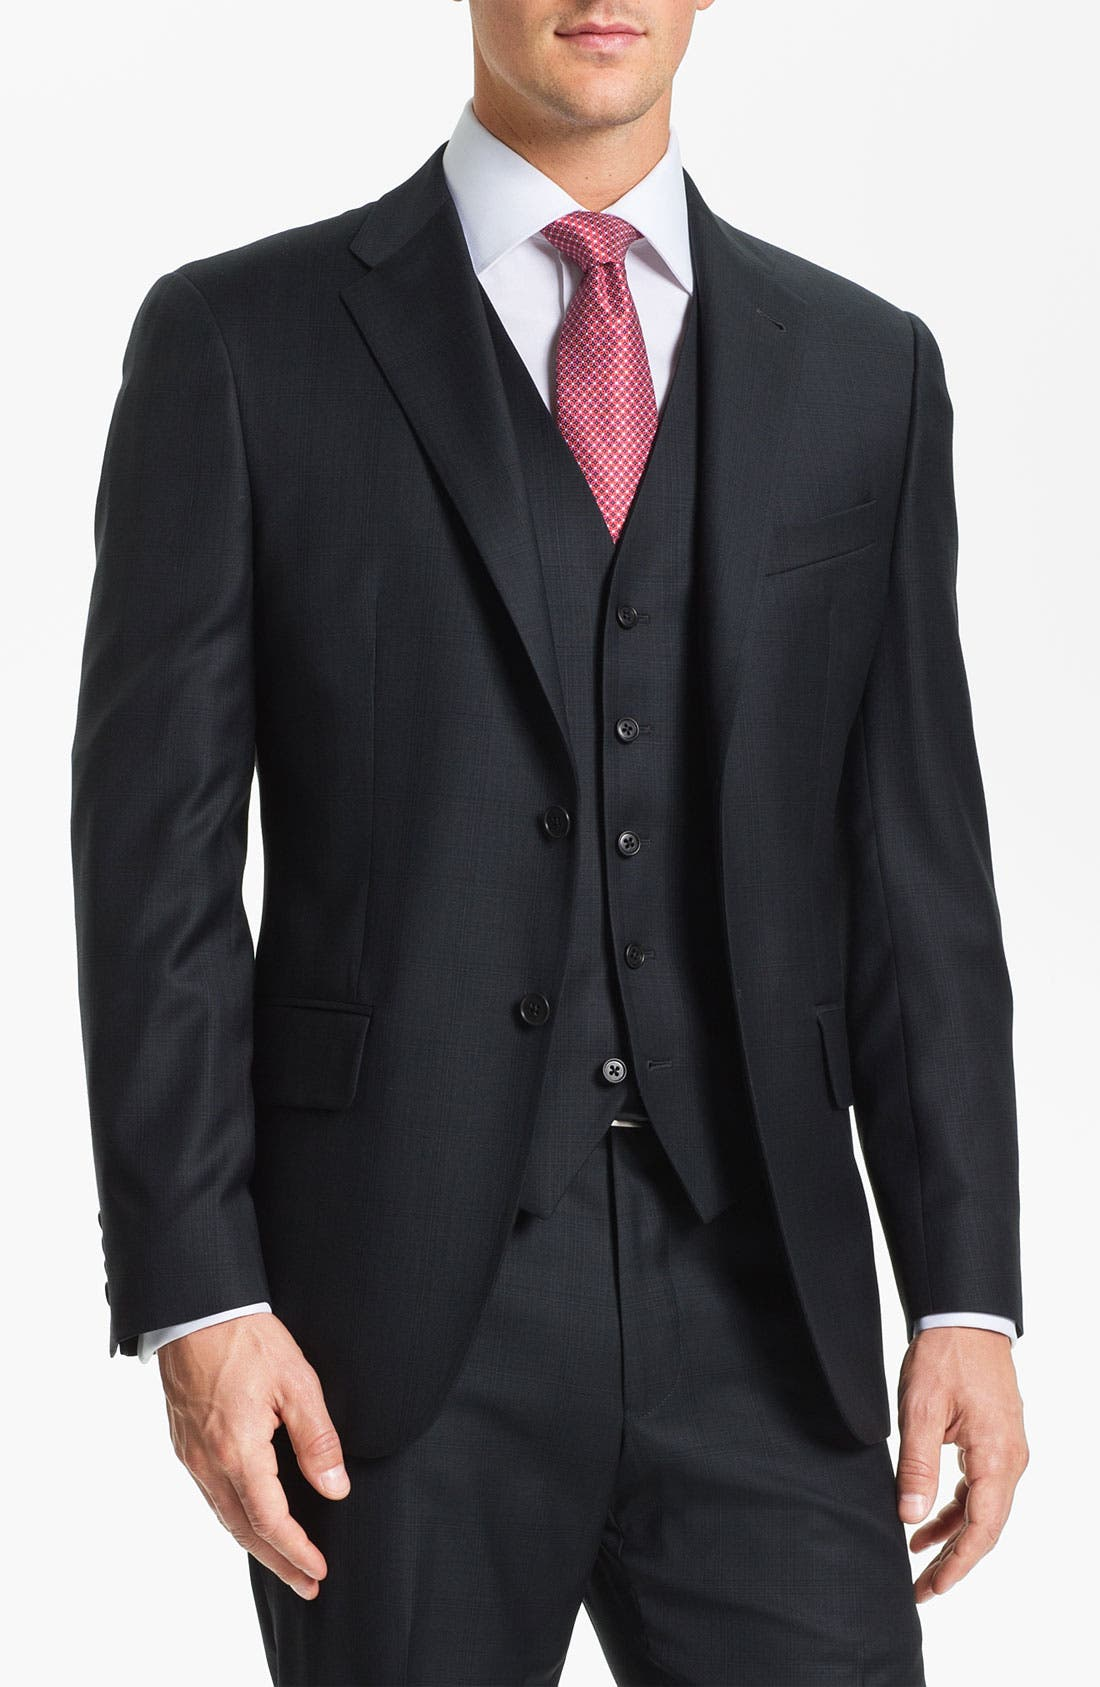 Alternate Image 1 Selected - Joseph Abboud Trim Fit Three Piece Suit